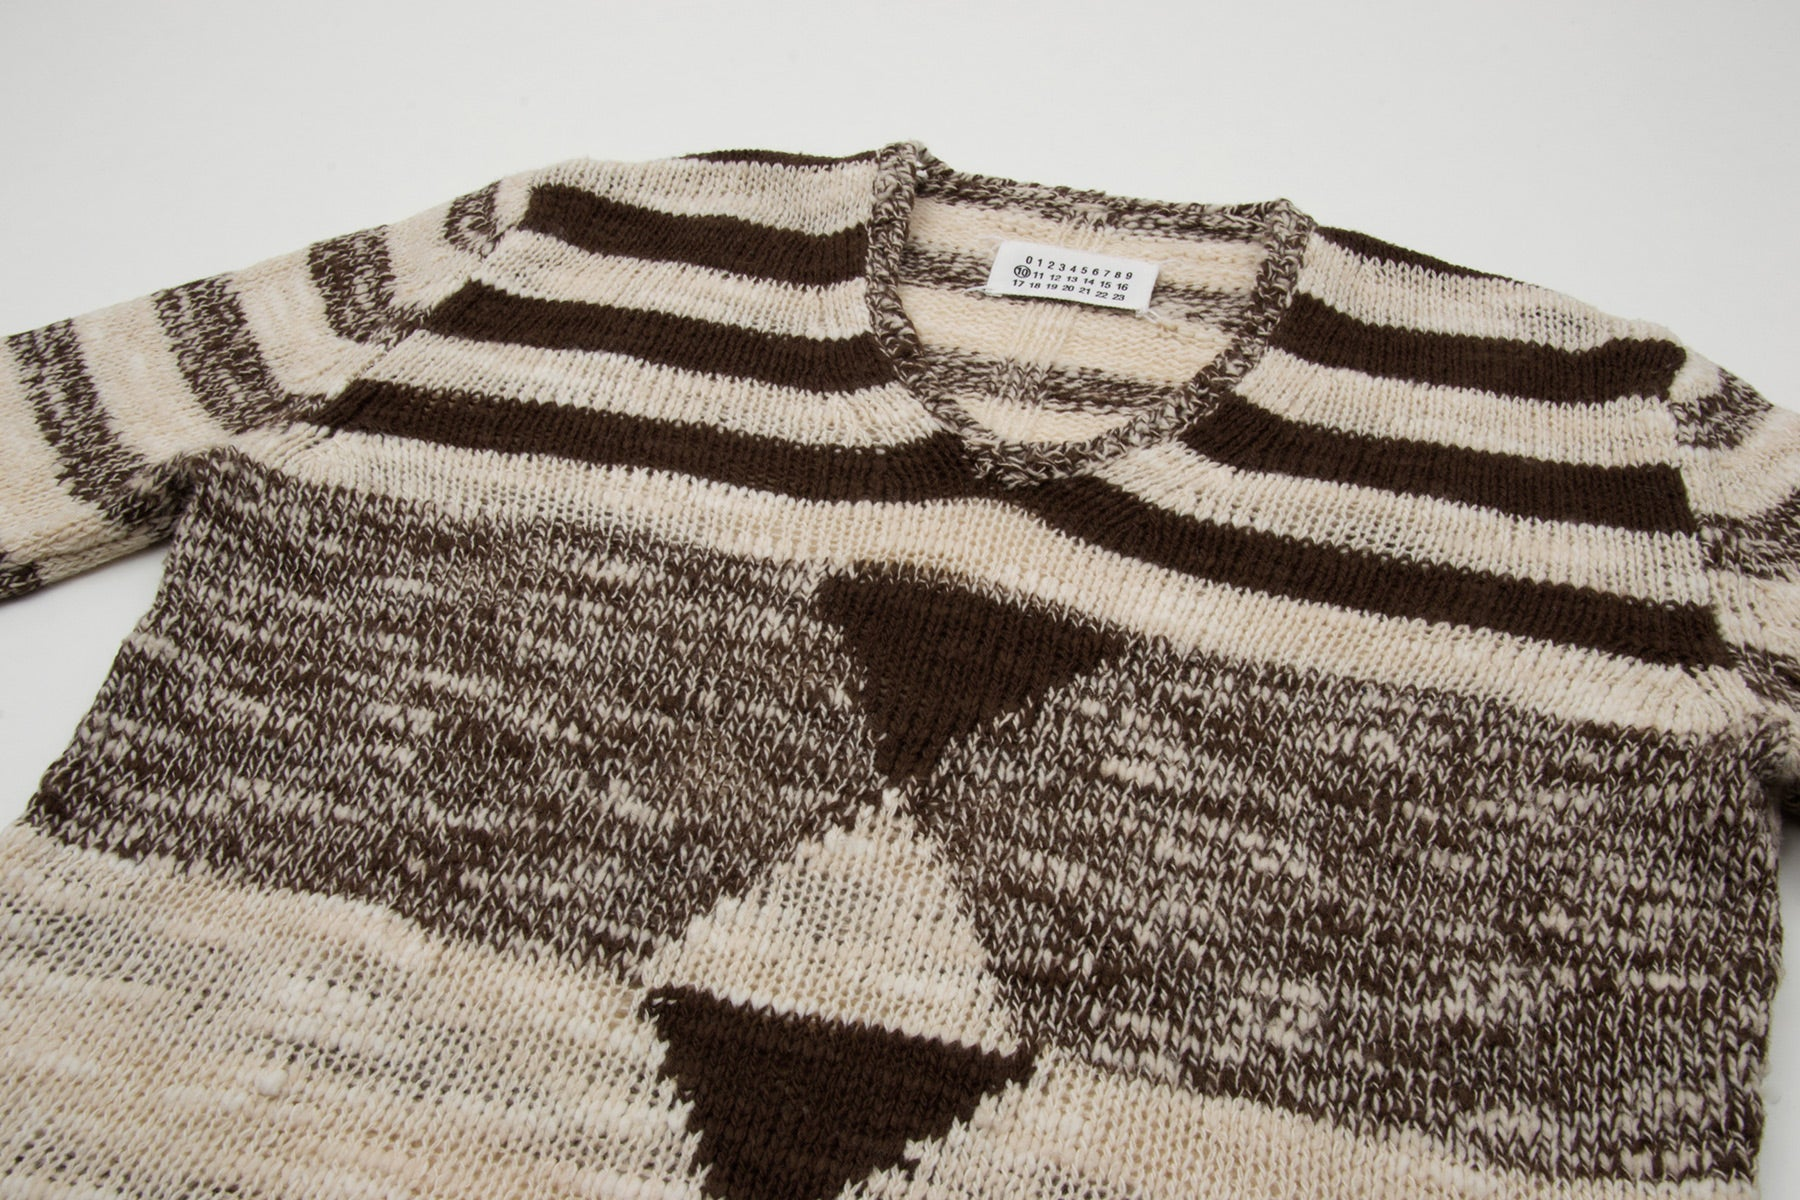 2007 A/W IRREGULARY KNITTED V-NECK SWEATER